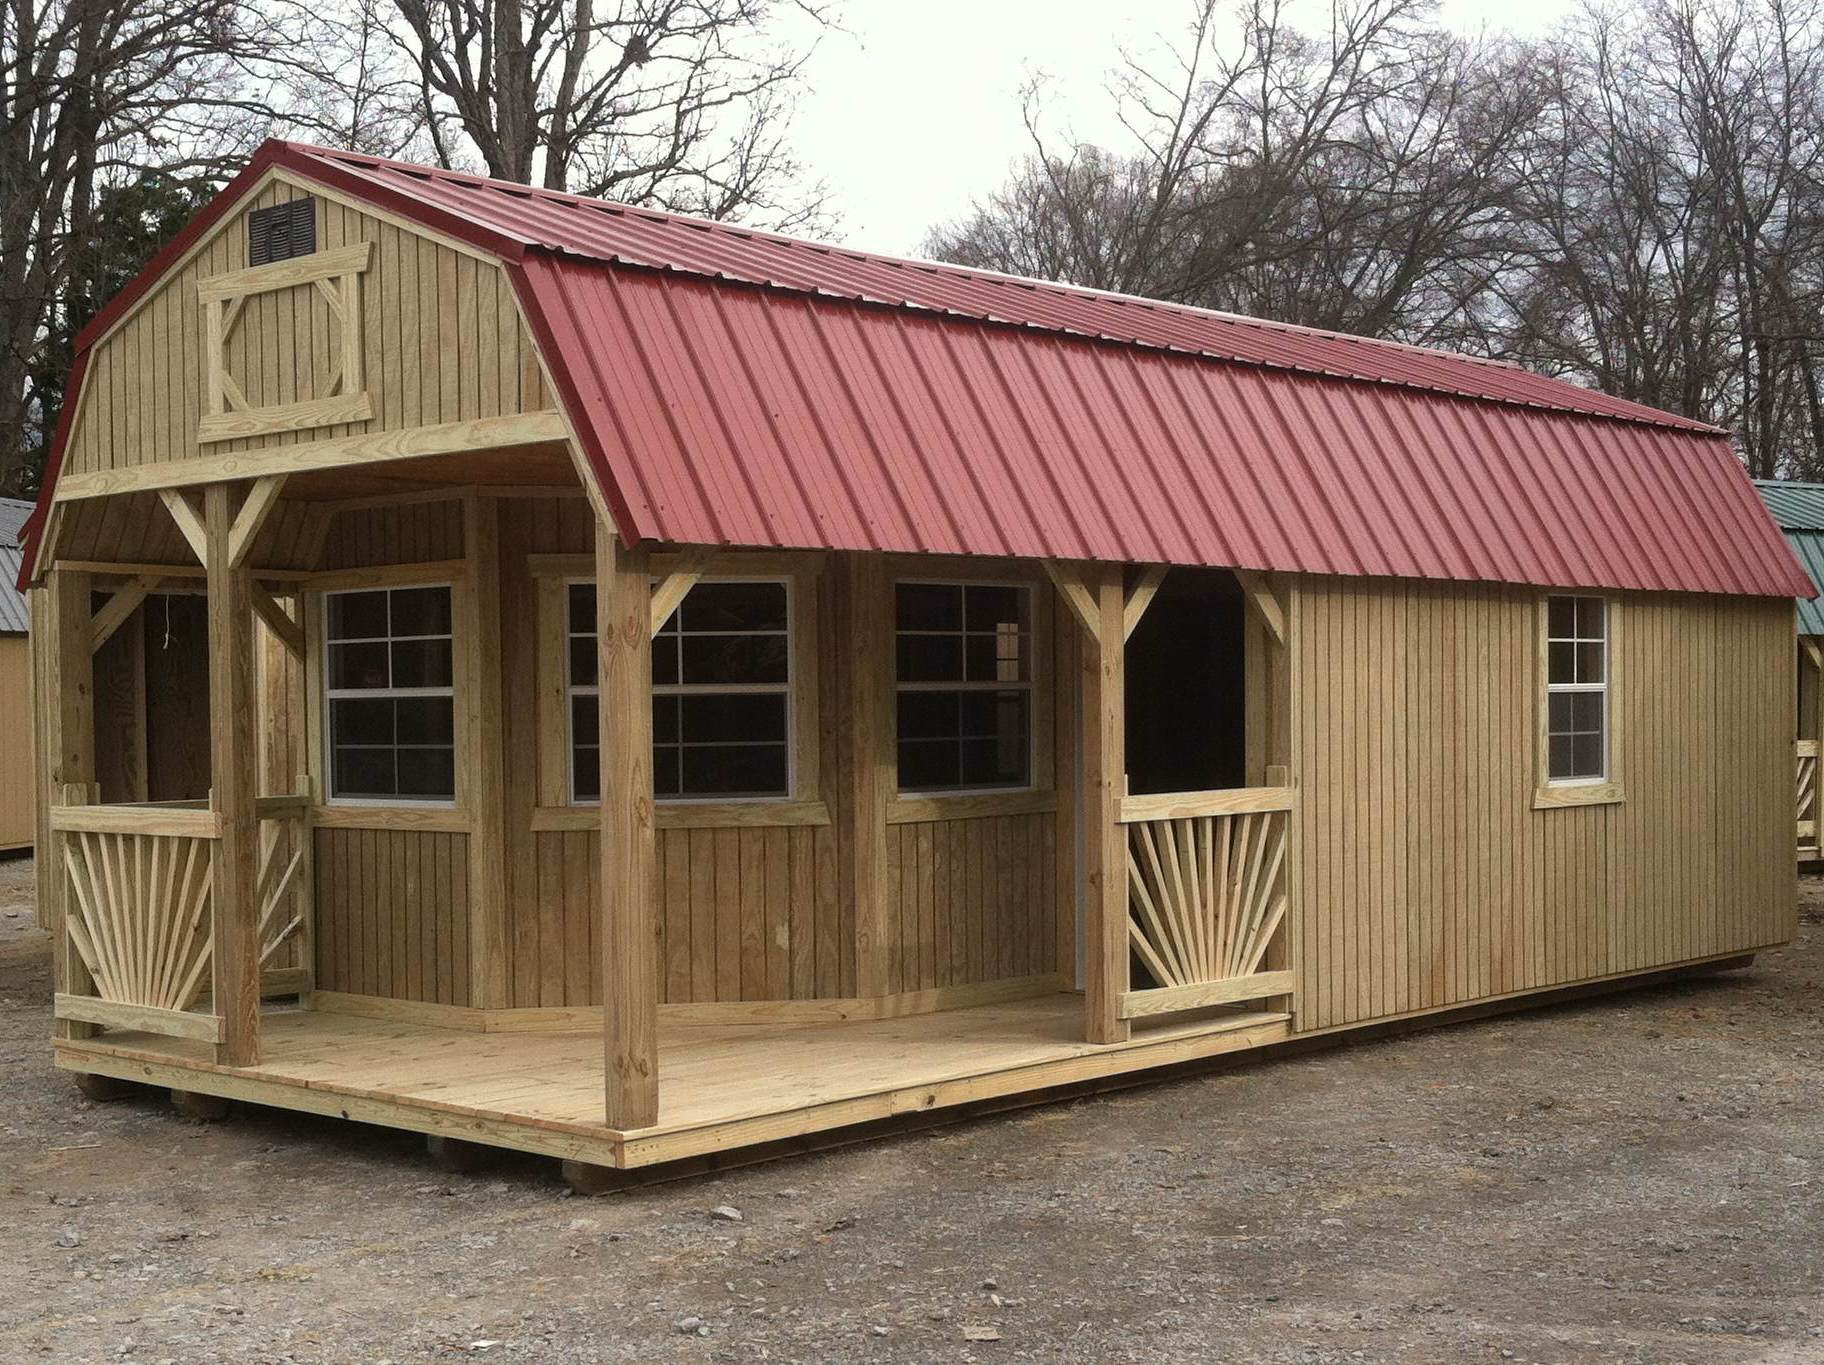 Hickory sheds west cabins cabins n small homes for Small portable shed